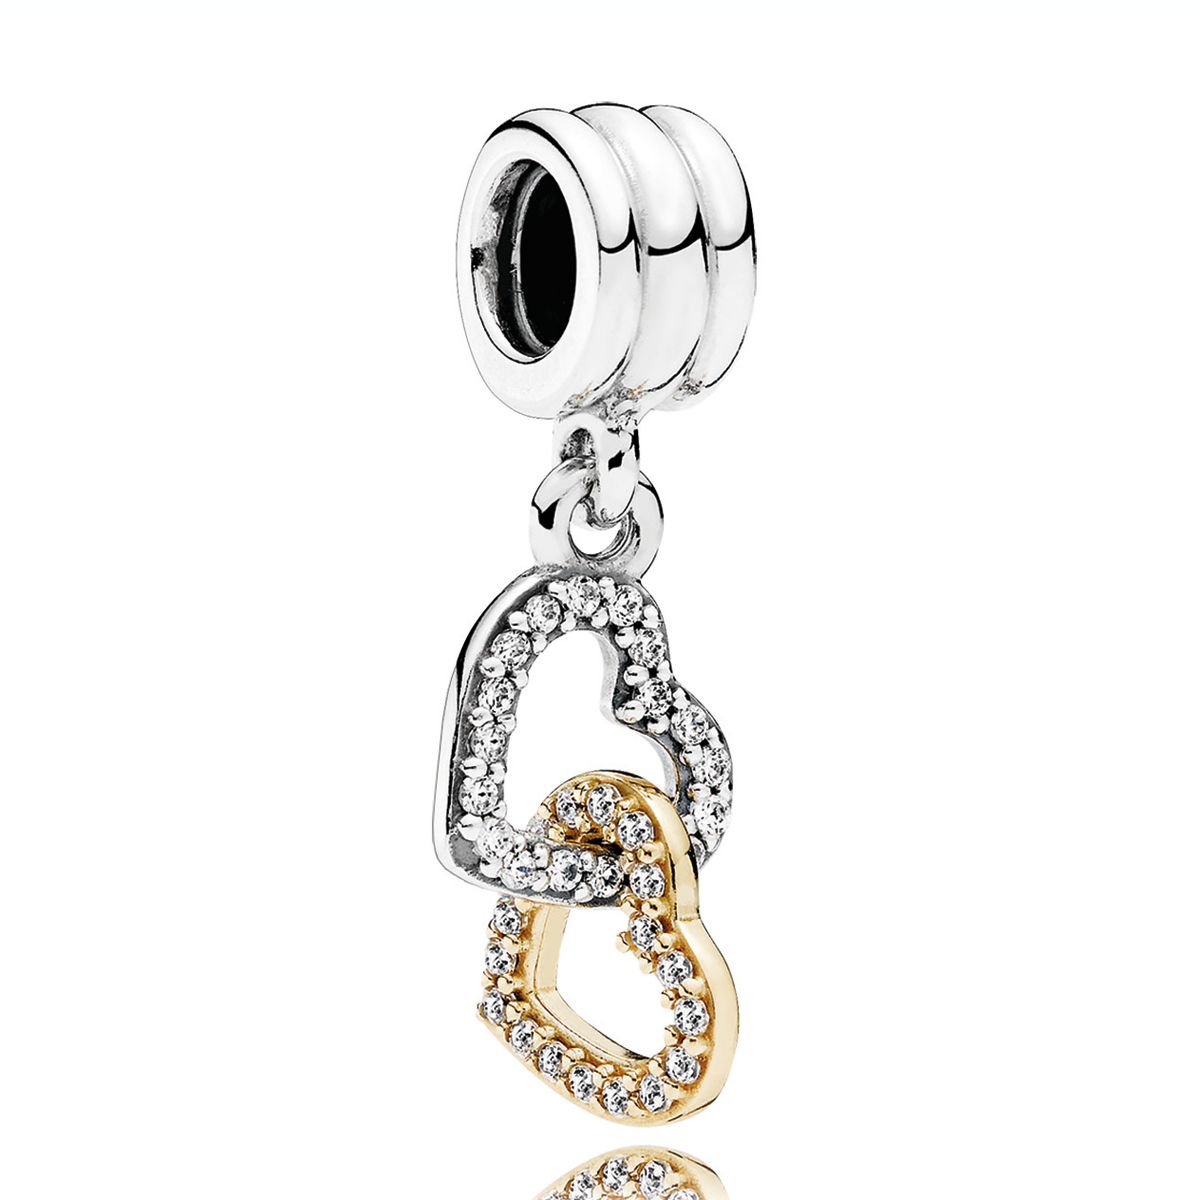 en collection rose charm ie pandora collections pandorarose updated infinity brandsite awrose